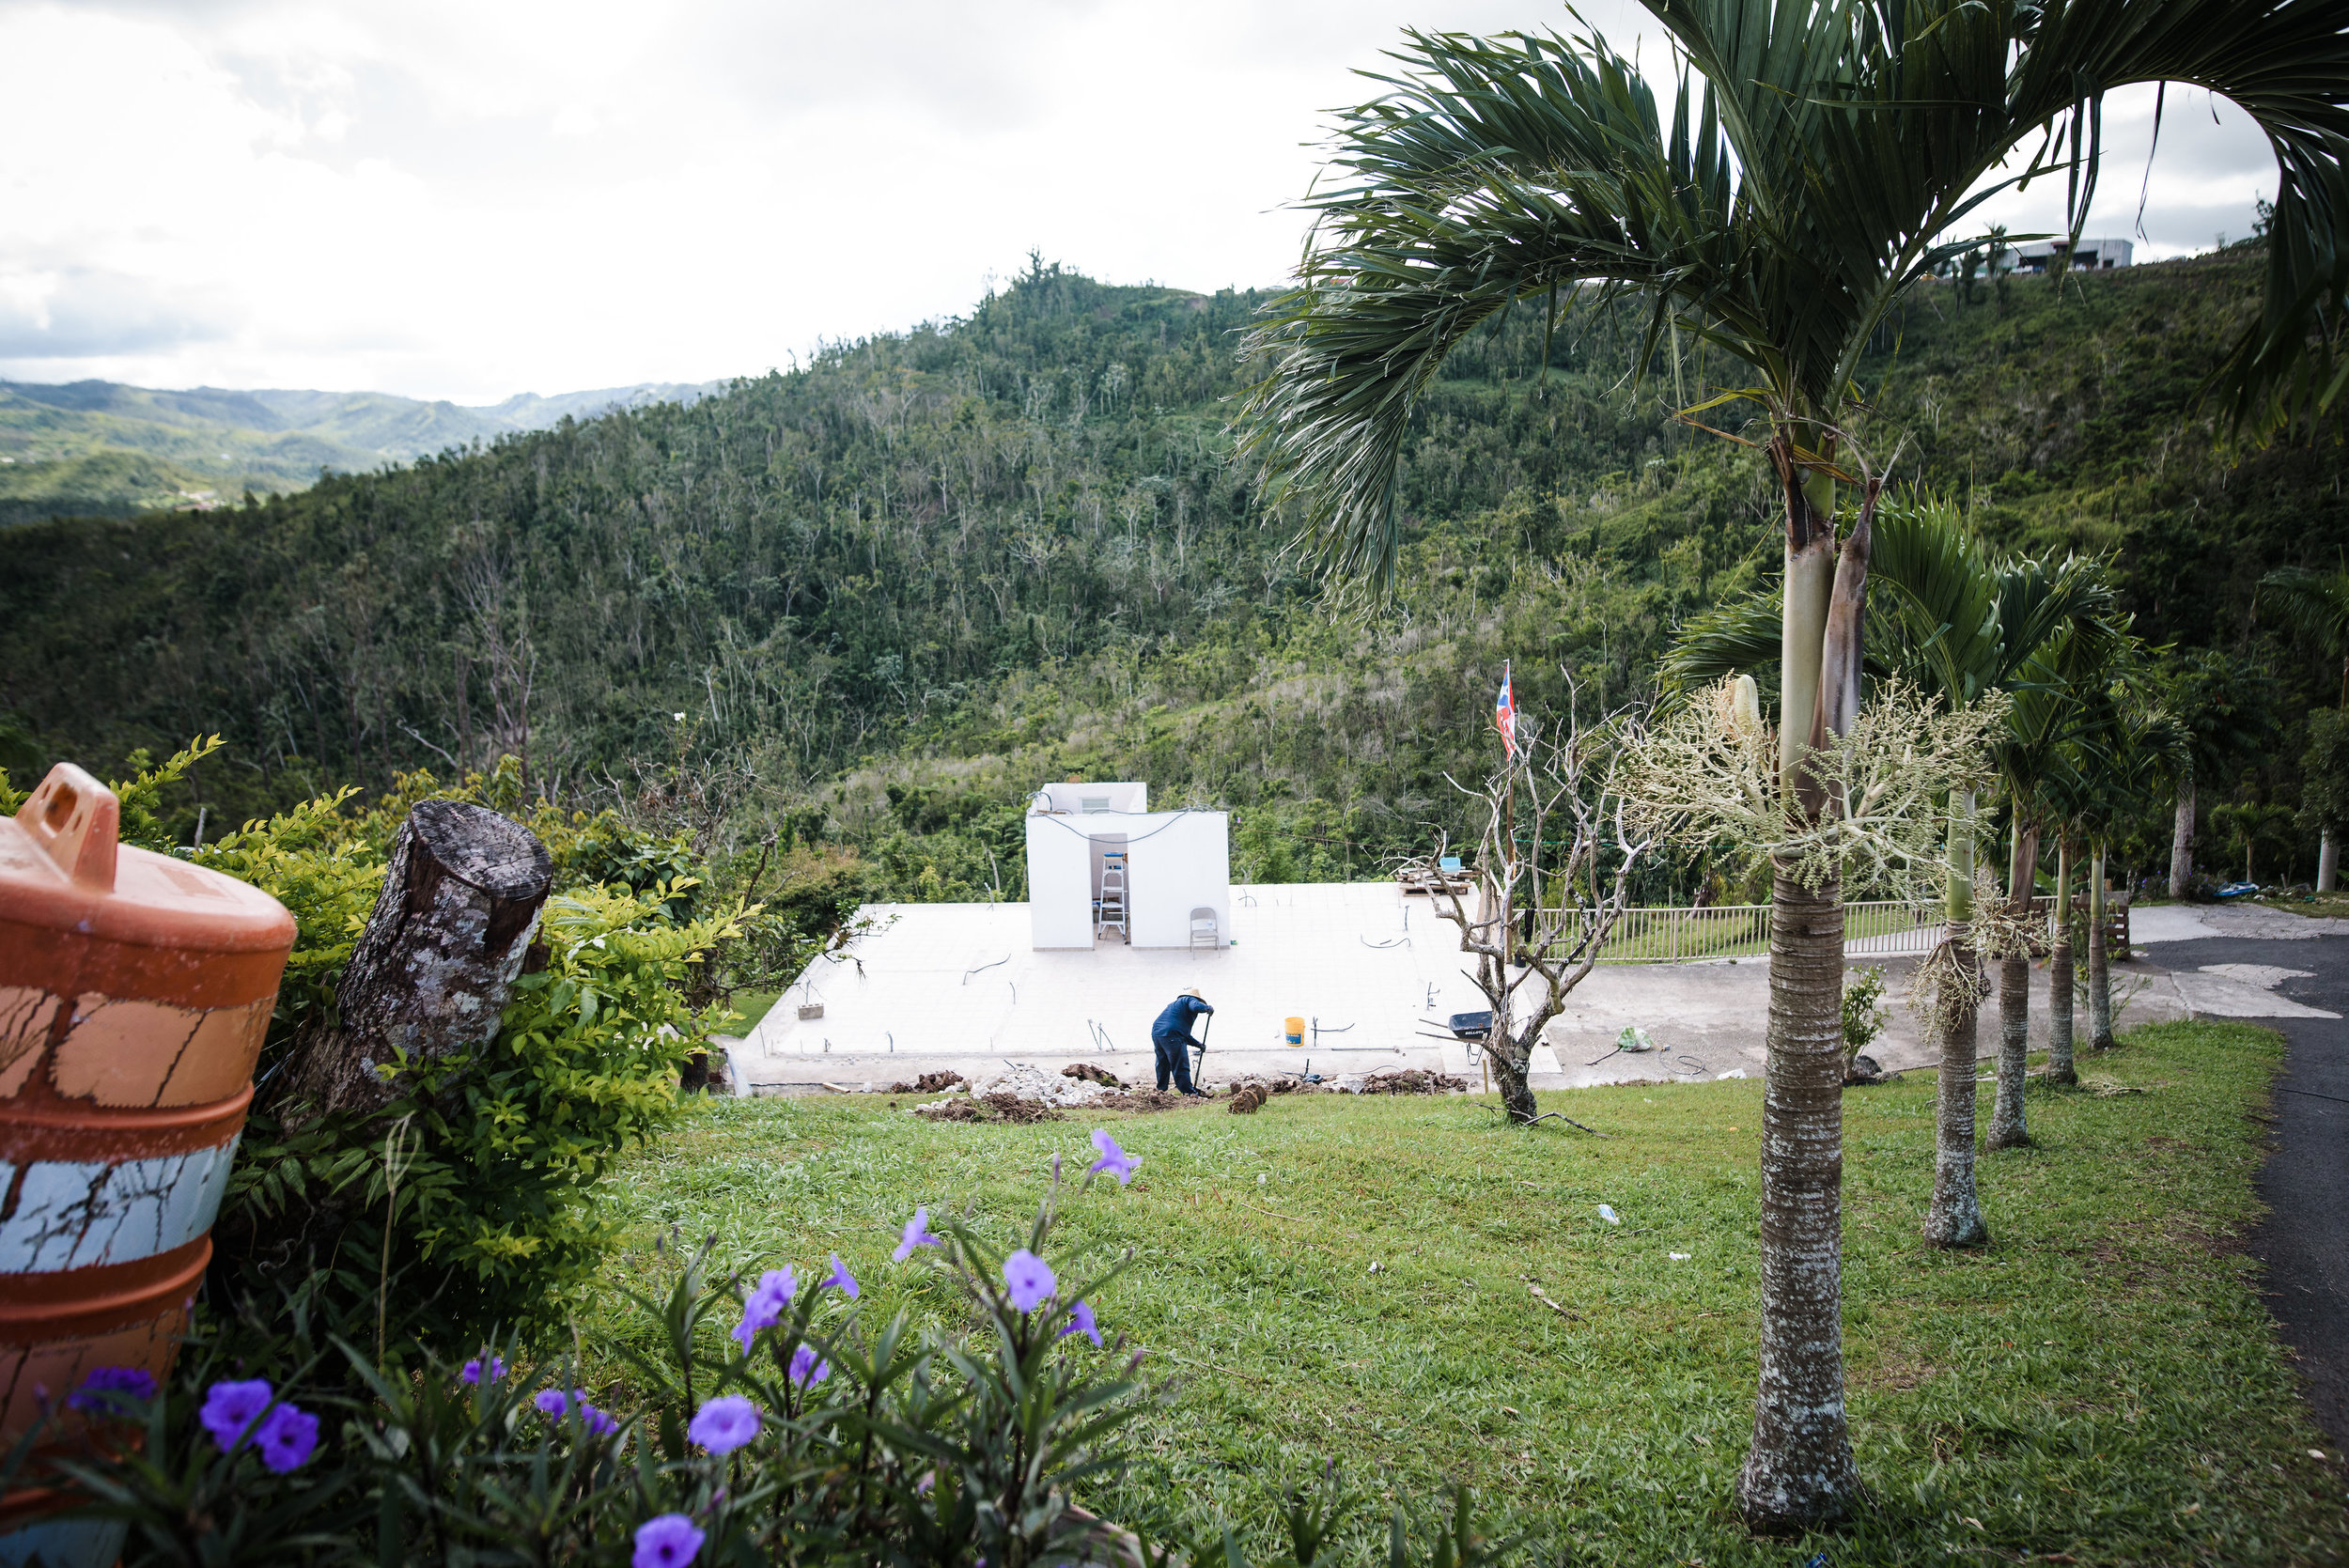 Juan Hernandez, a truck driver from Orocovis, PR, works alone on rebuilding his home that he built just 10 years ago. The house was blown away with the hurricane and parts of the home can be seen in the valley below.Photo: Aniya Emtage Legnaro